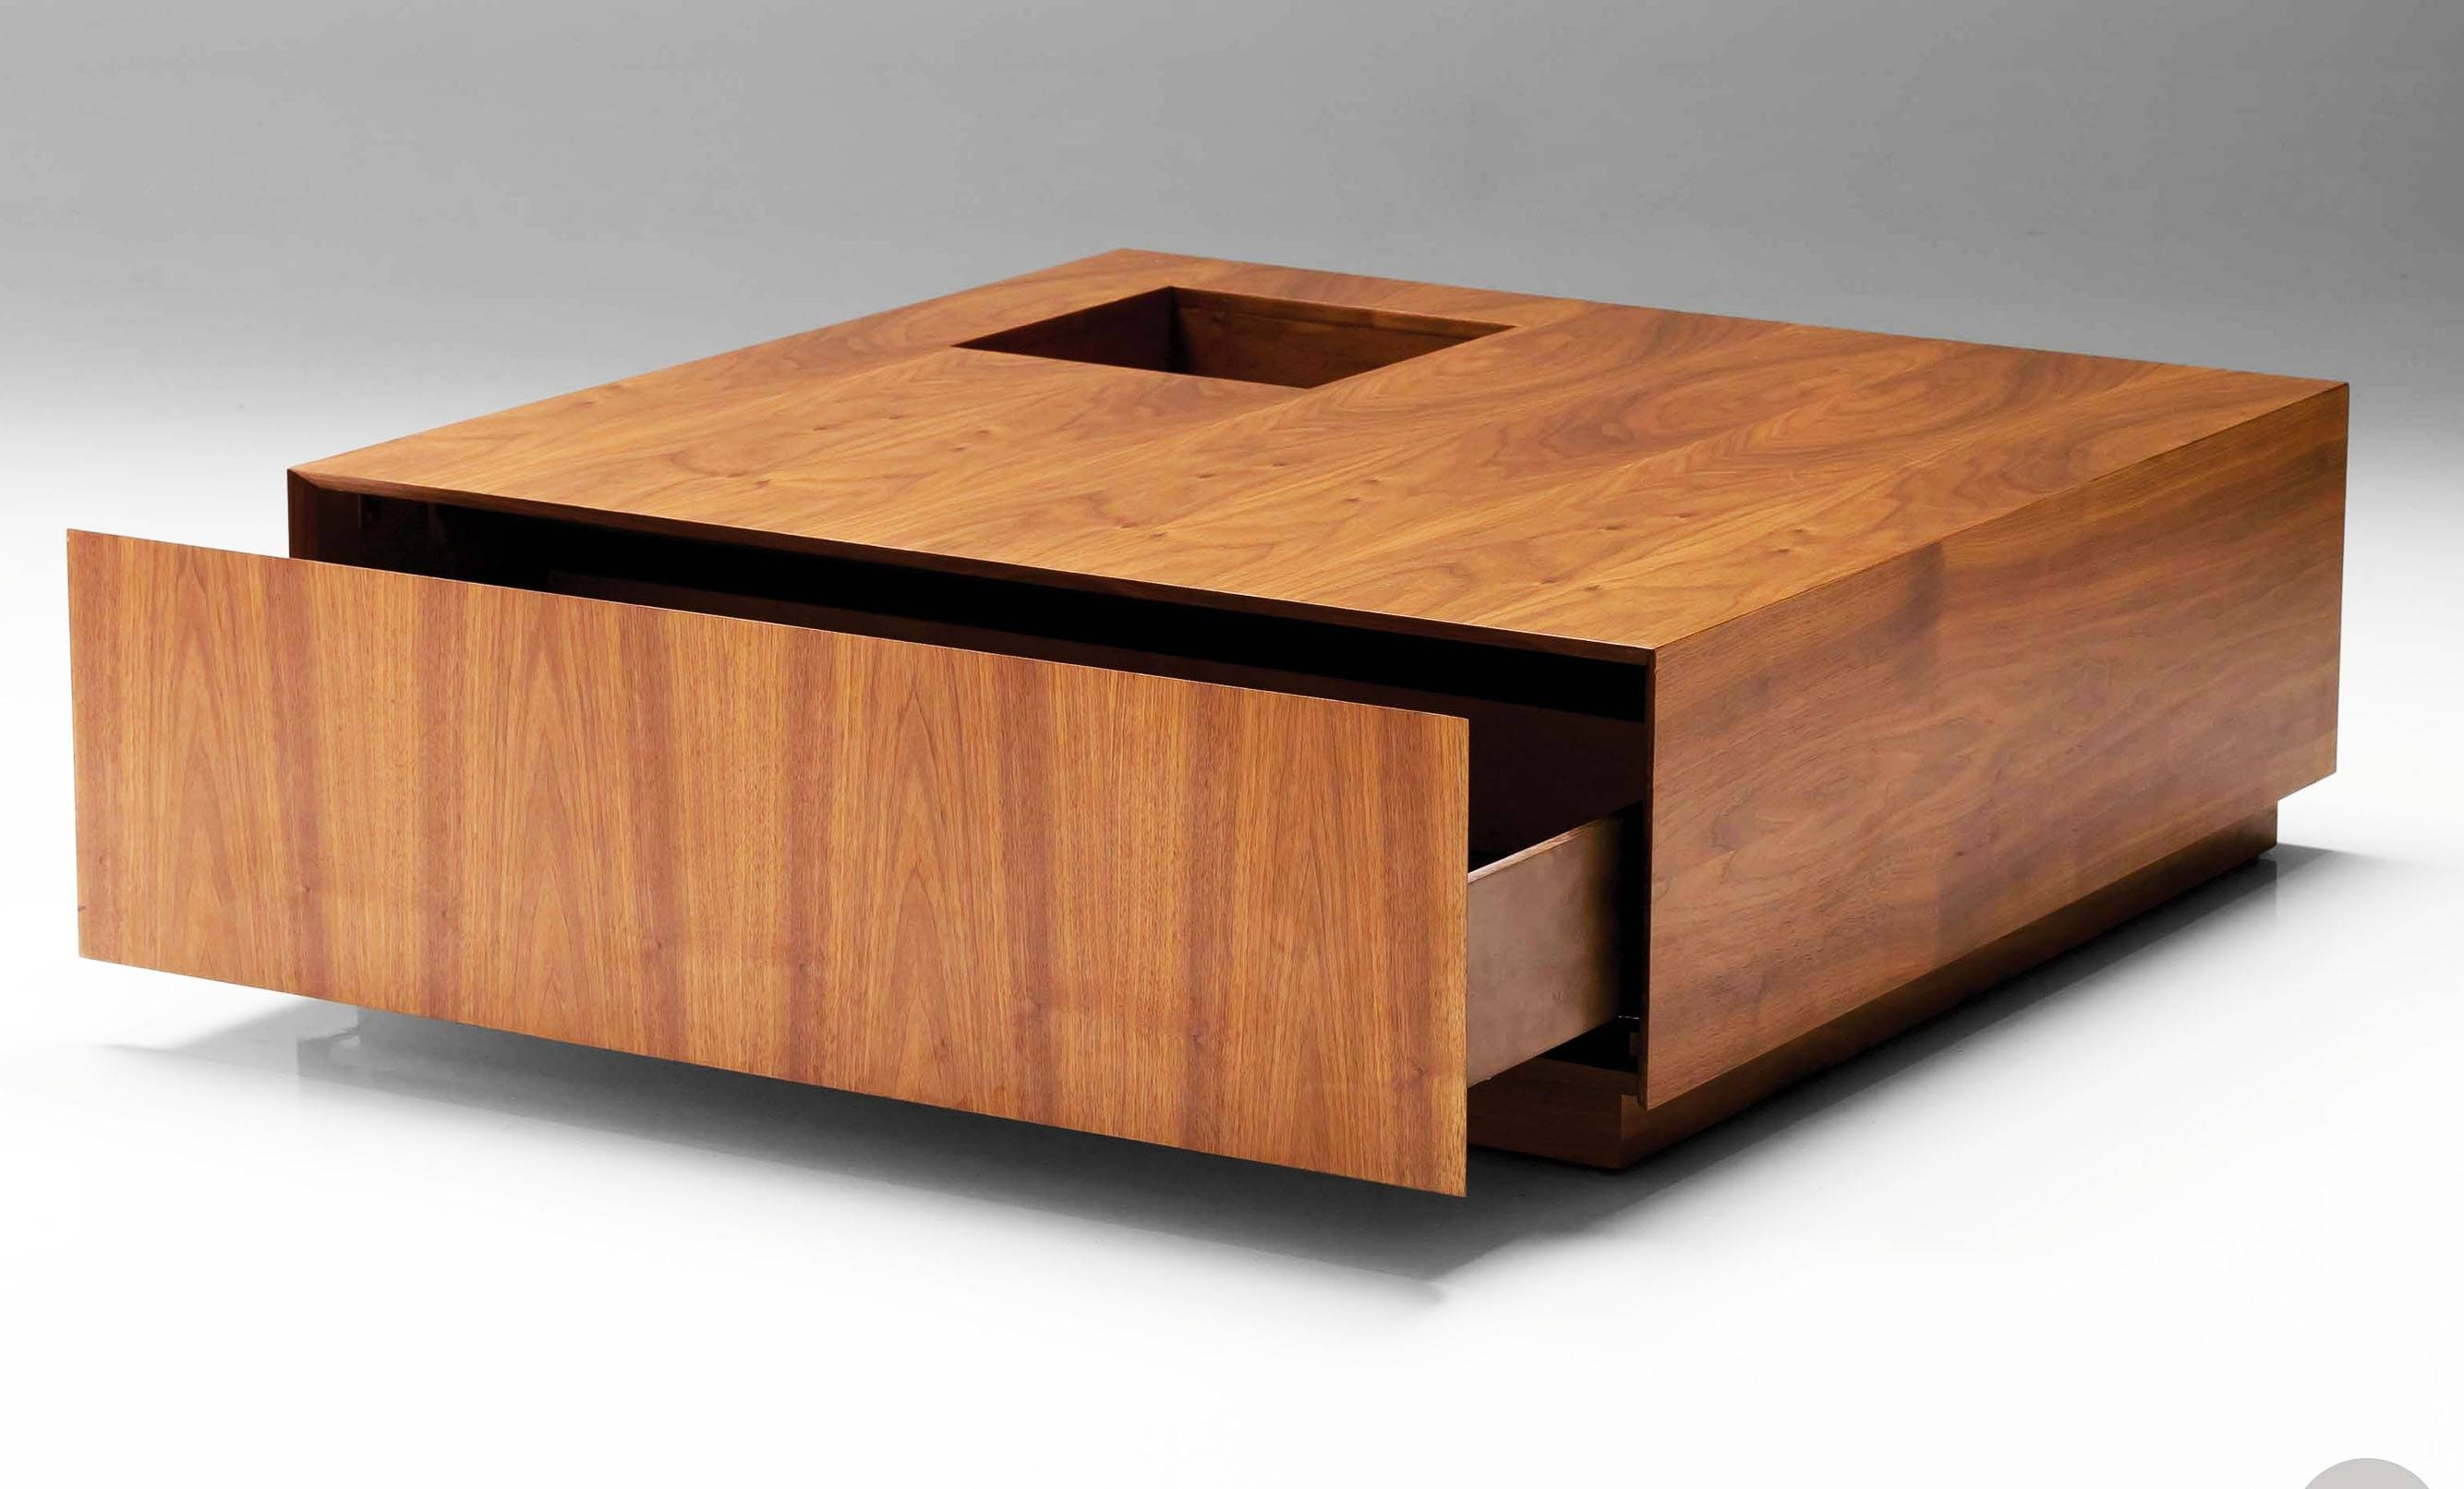 Large Square Coffee Tables | Homefurniture for Low Square Coffee Tables (Image 12 of 30)